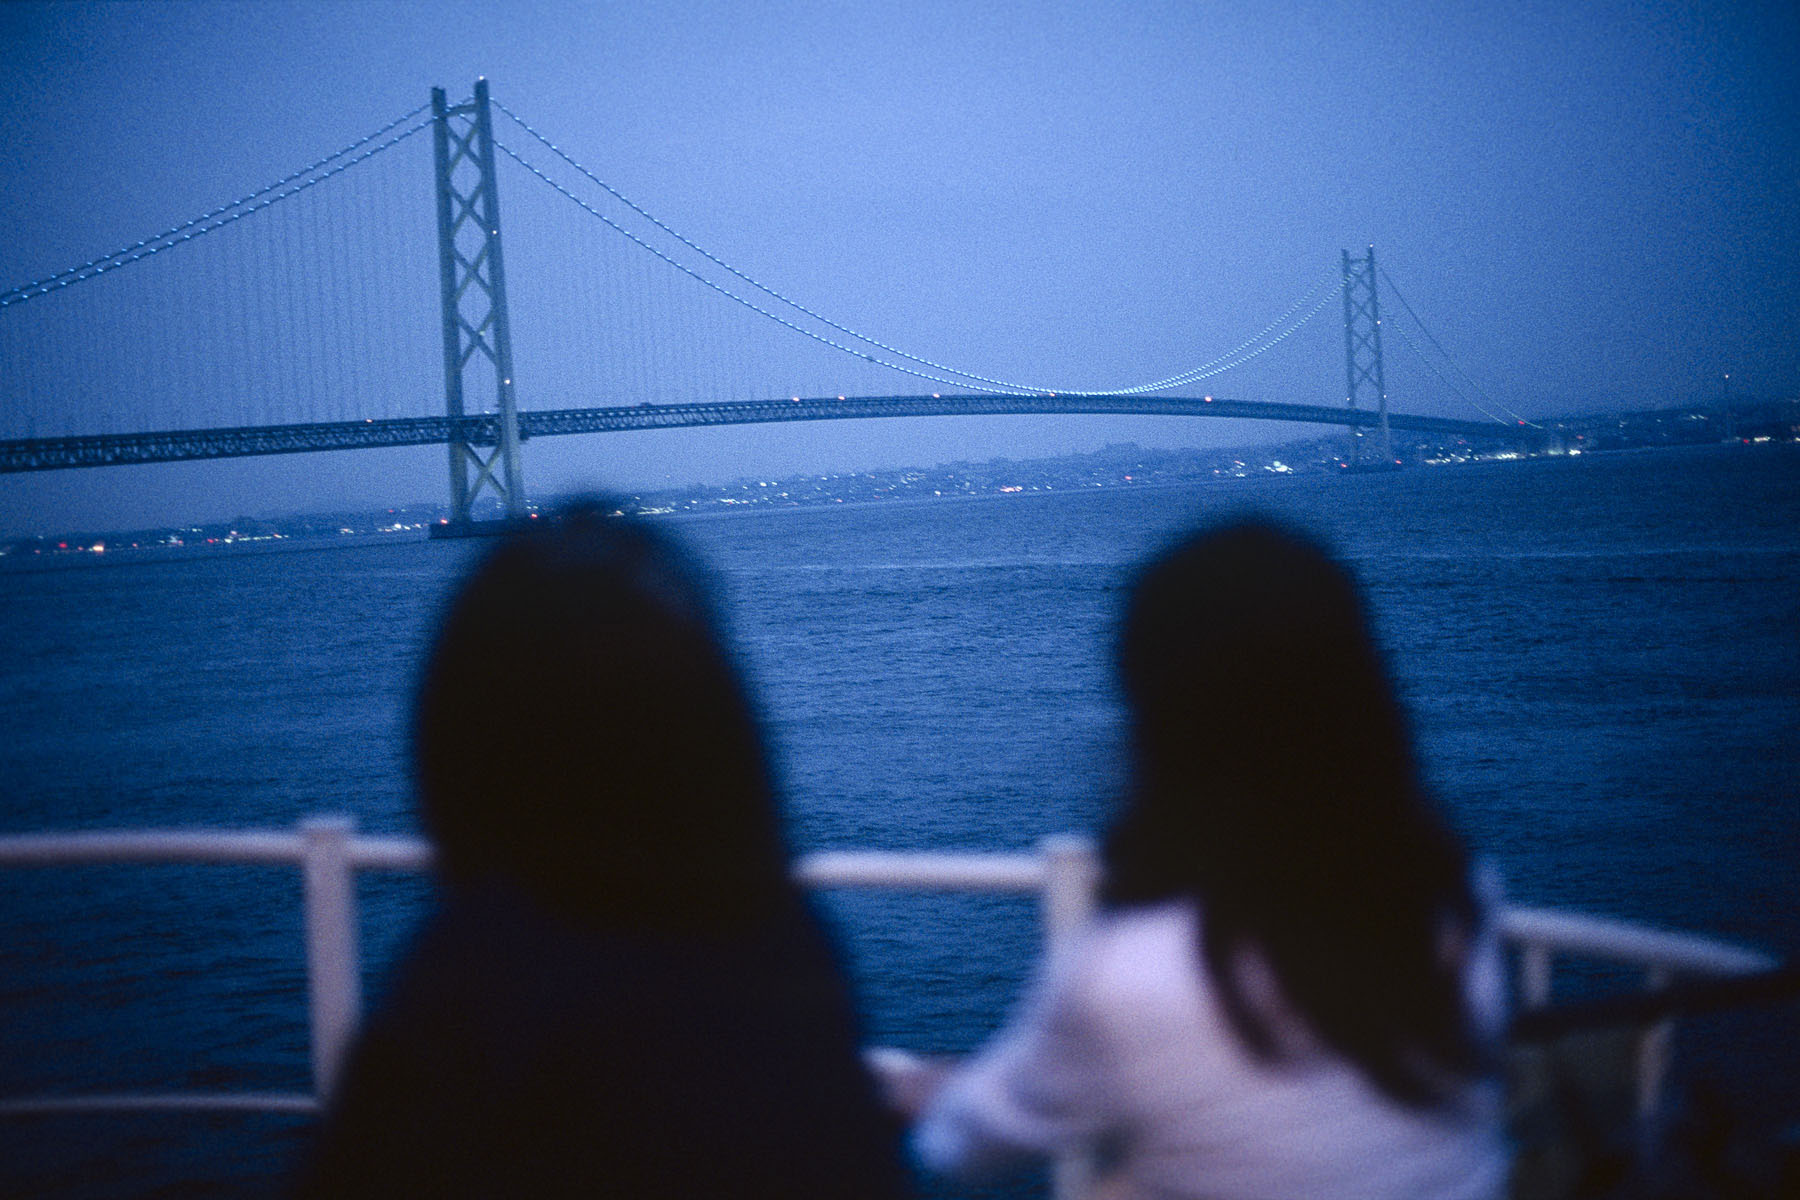 The Kobe bridge from the ferry back to Awaii island in May 1999